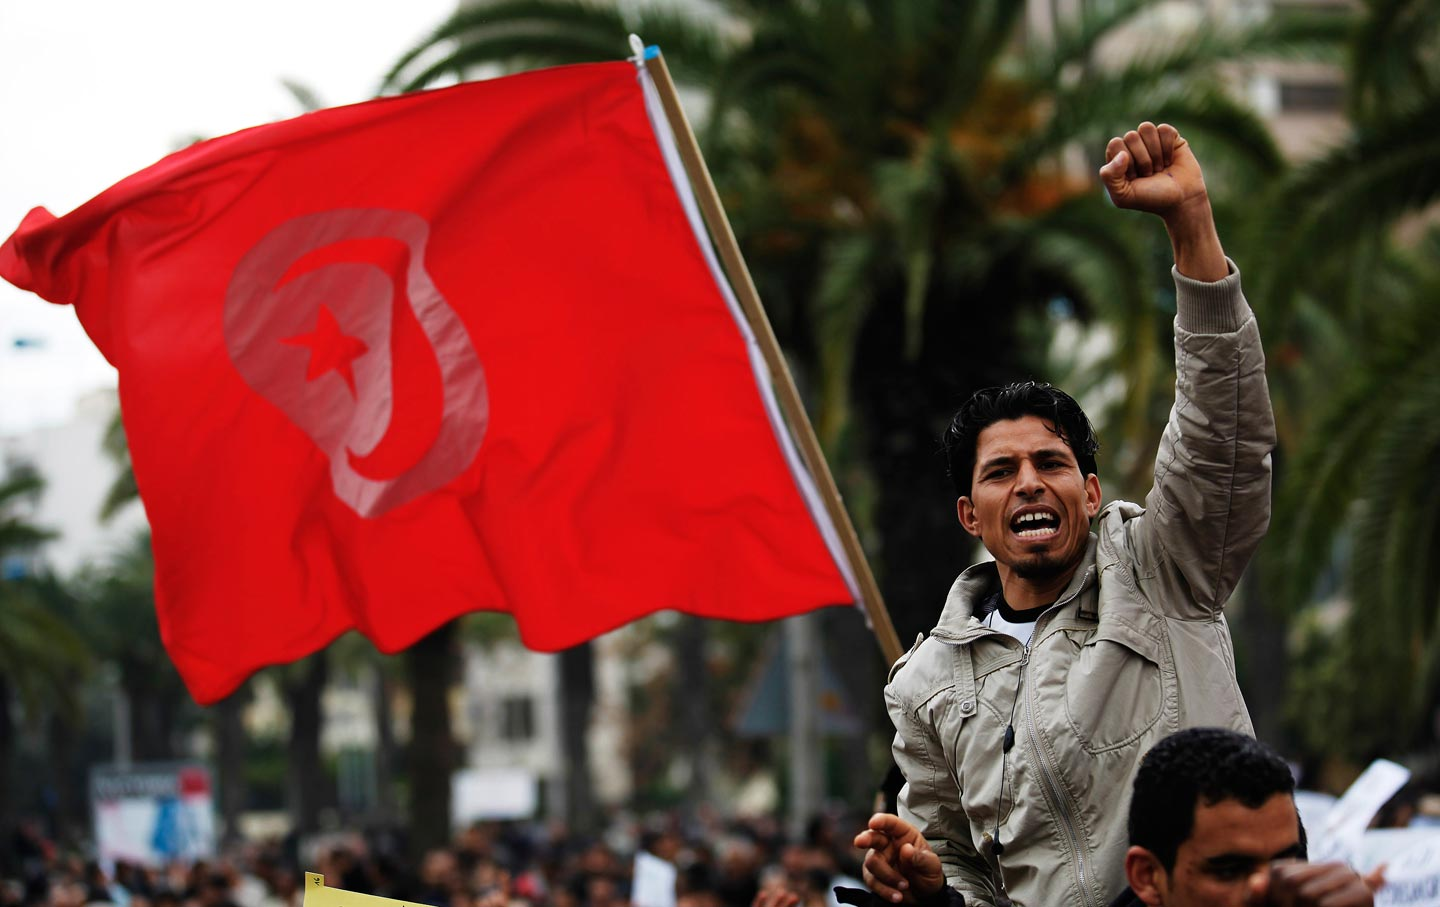 Tunisian protesters rally against the Ben Ali government.